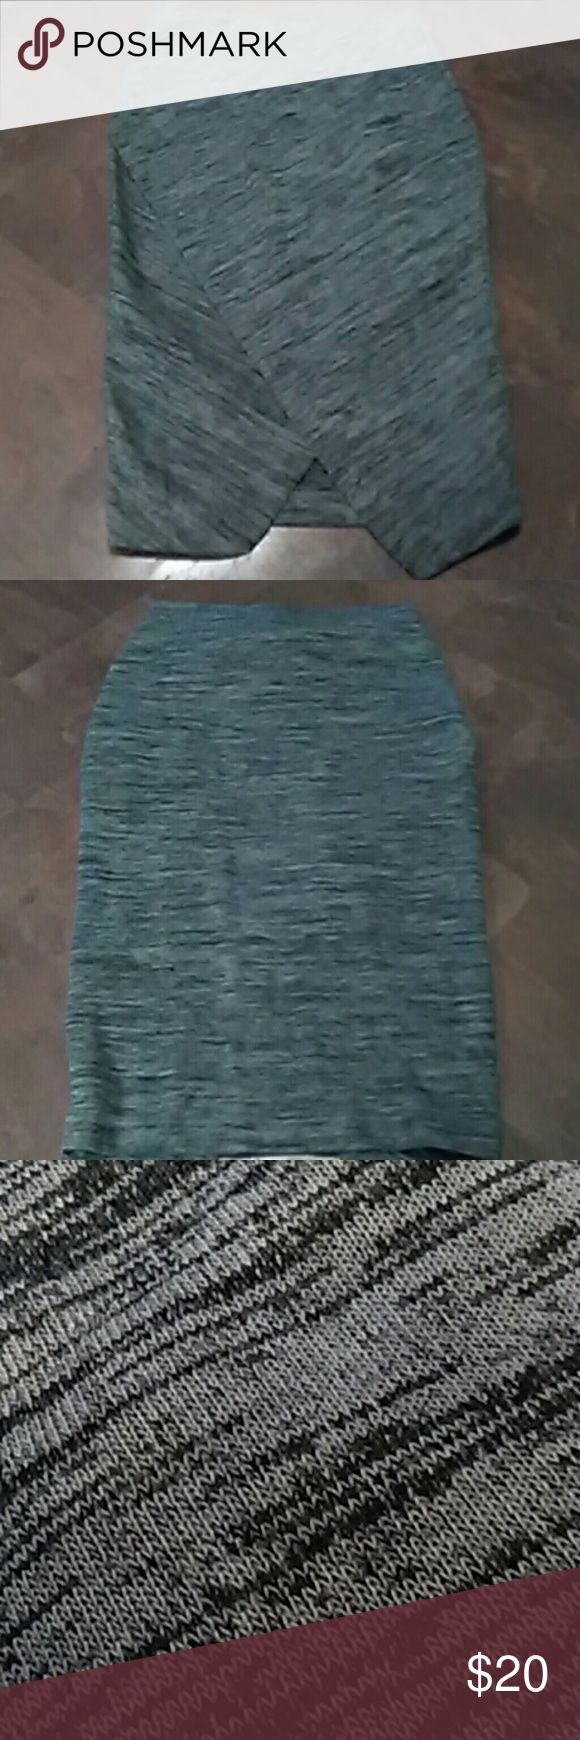 HM Gray Pencil Skirt SZ -Sm. Swirl design gray knit pencil skirt, bandless,pull on,lap front that makes V shape in center.Like new.26 inches long. H&M Skirts Pencil